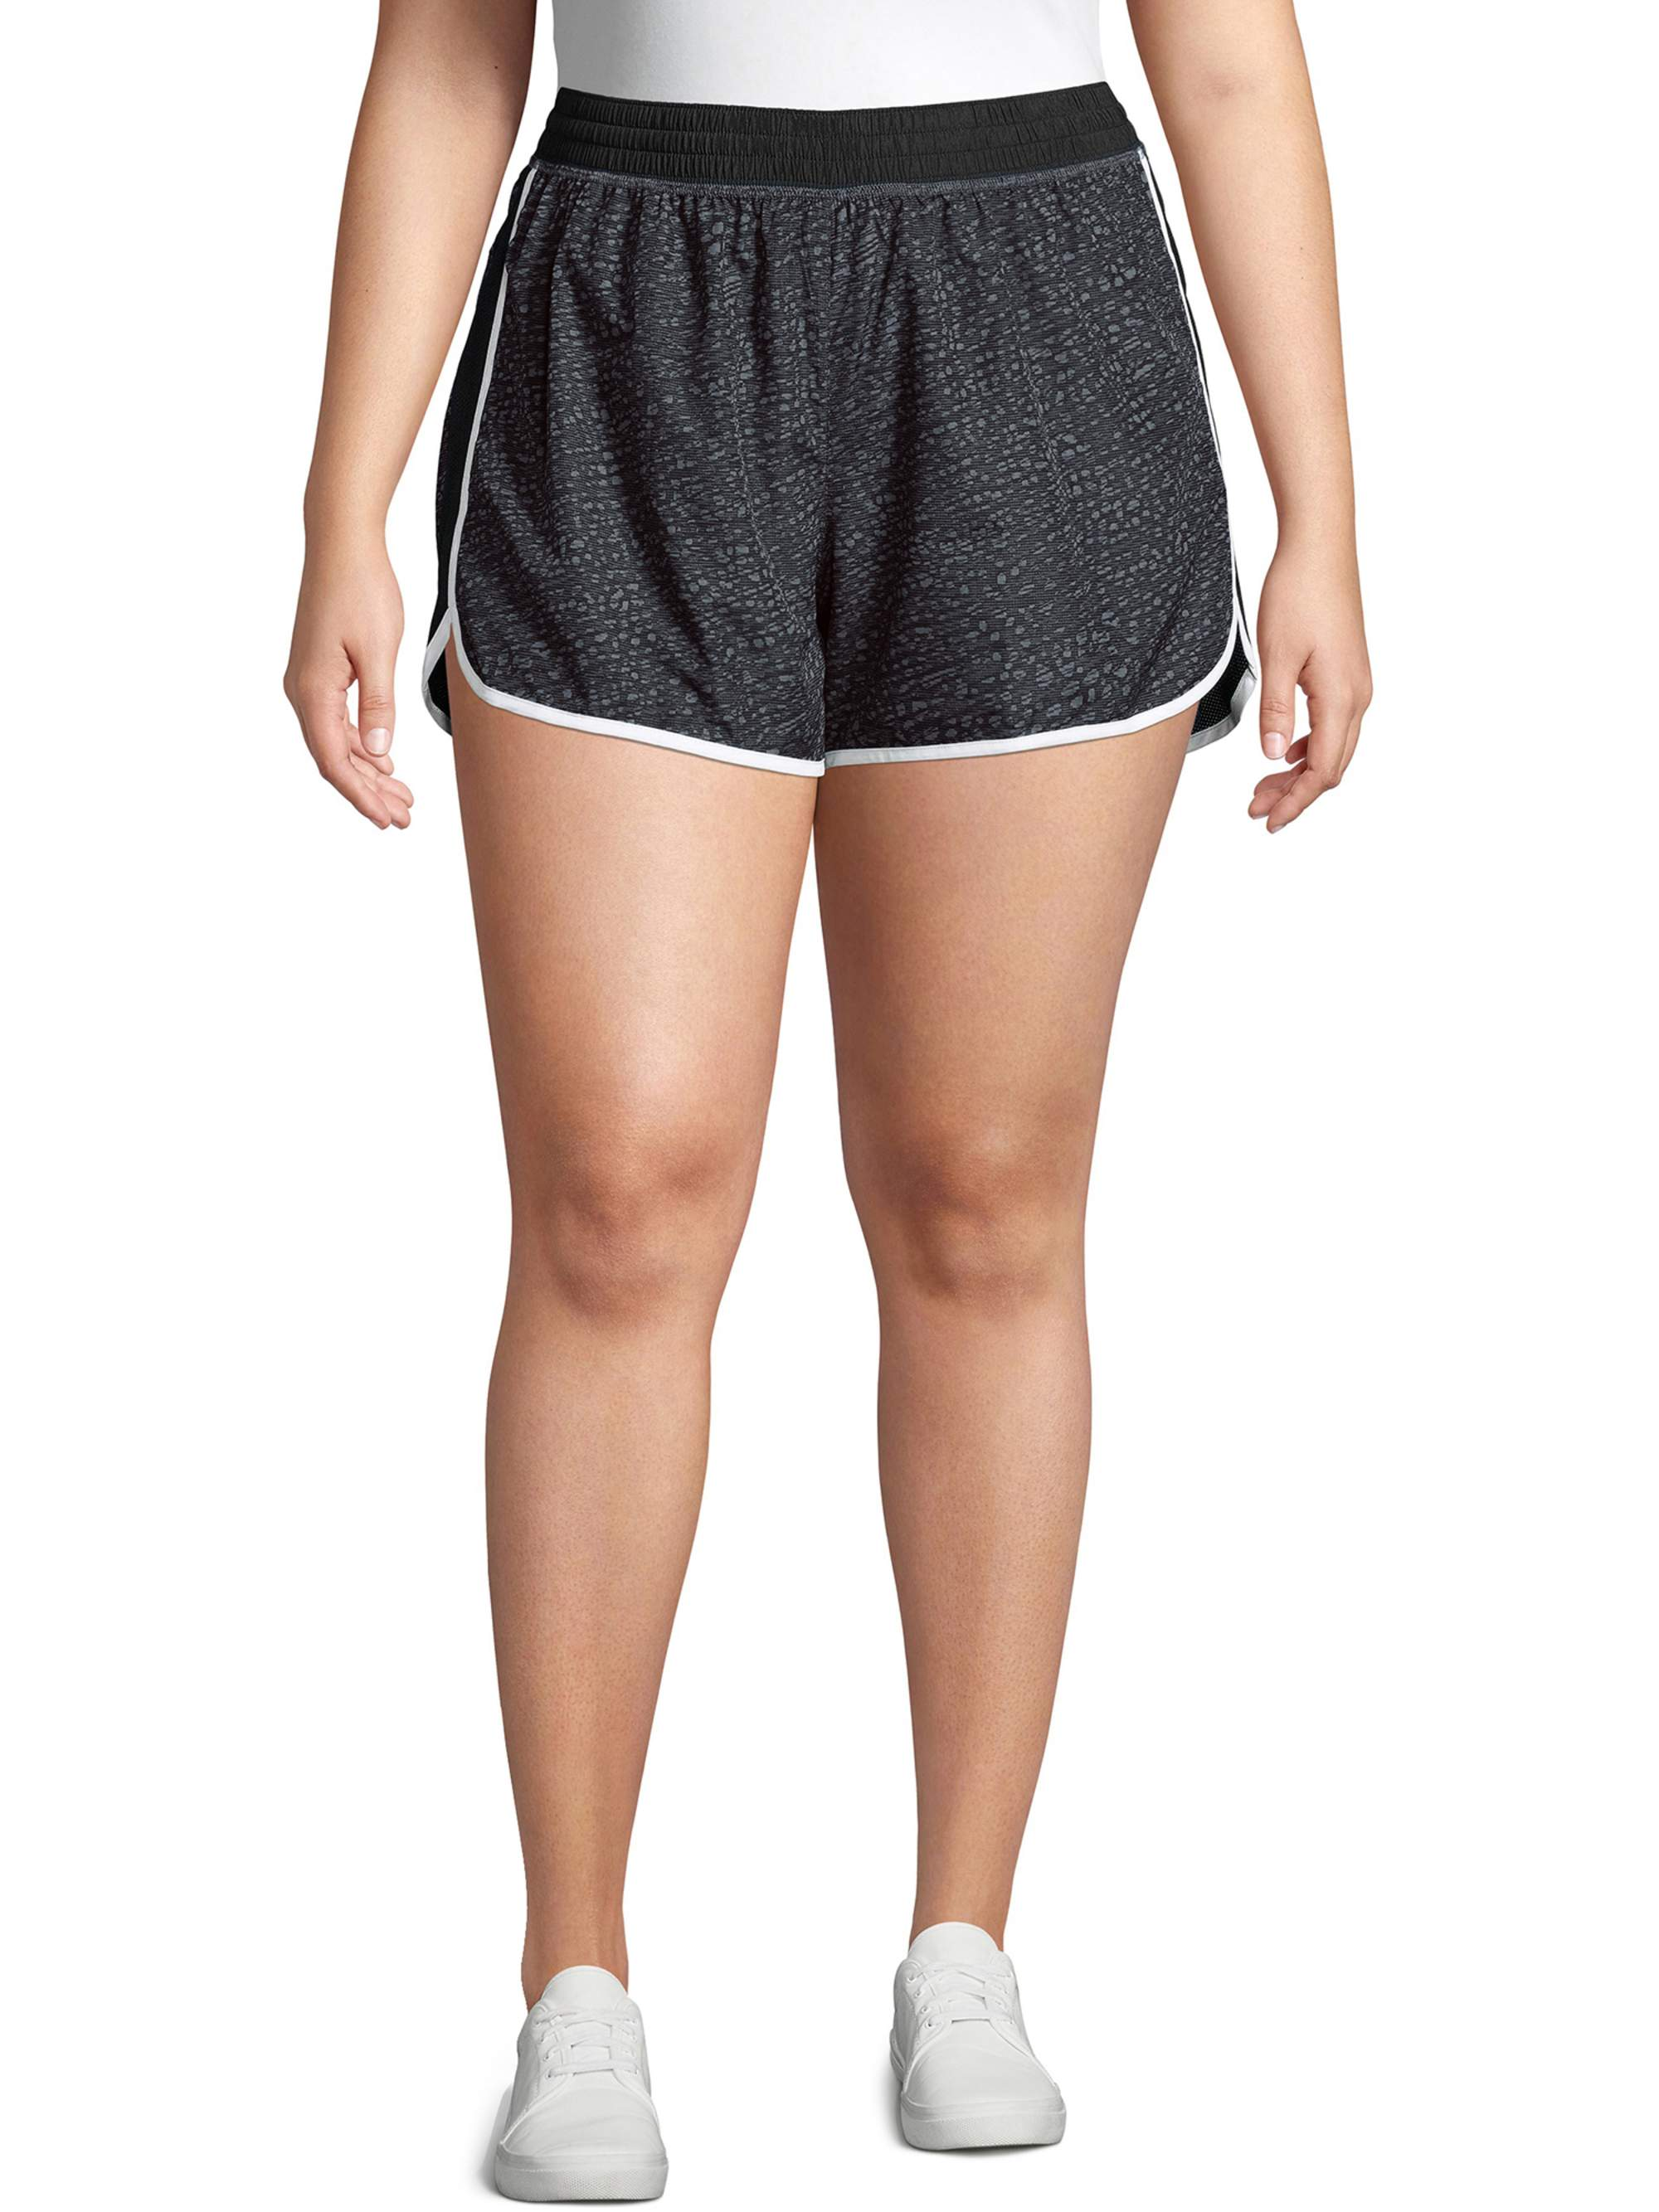 JUST MY SIZE Womens Plus Size Active Woven Run Short